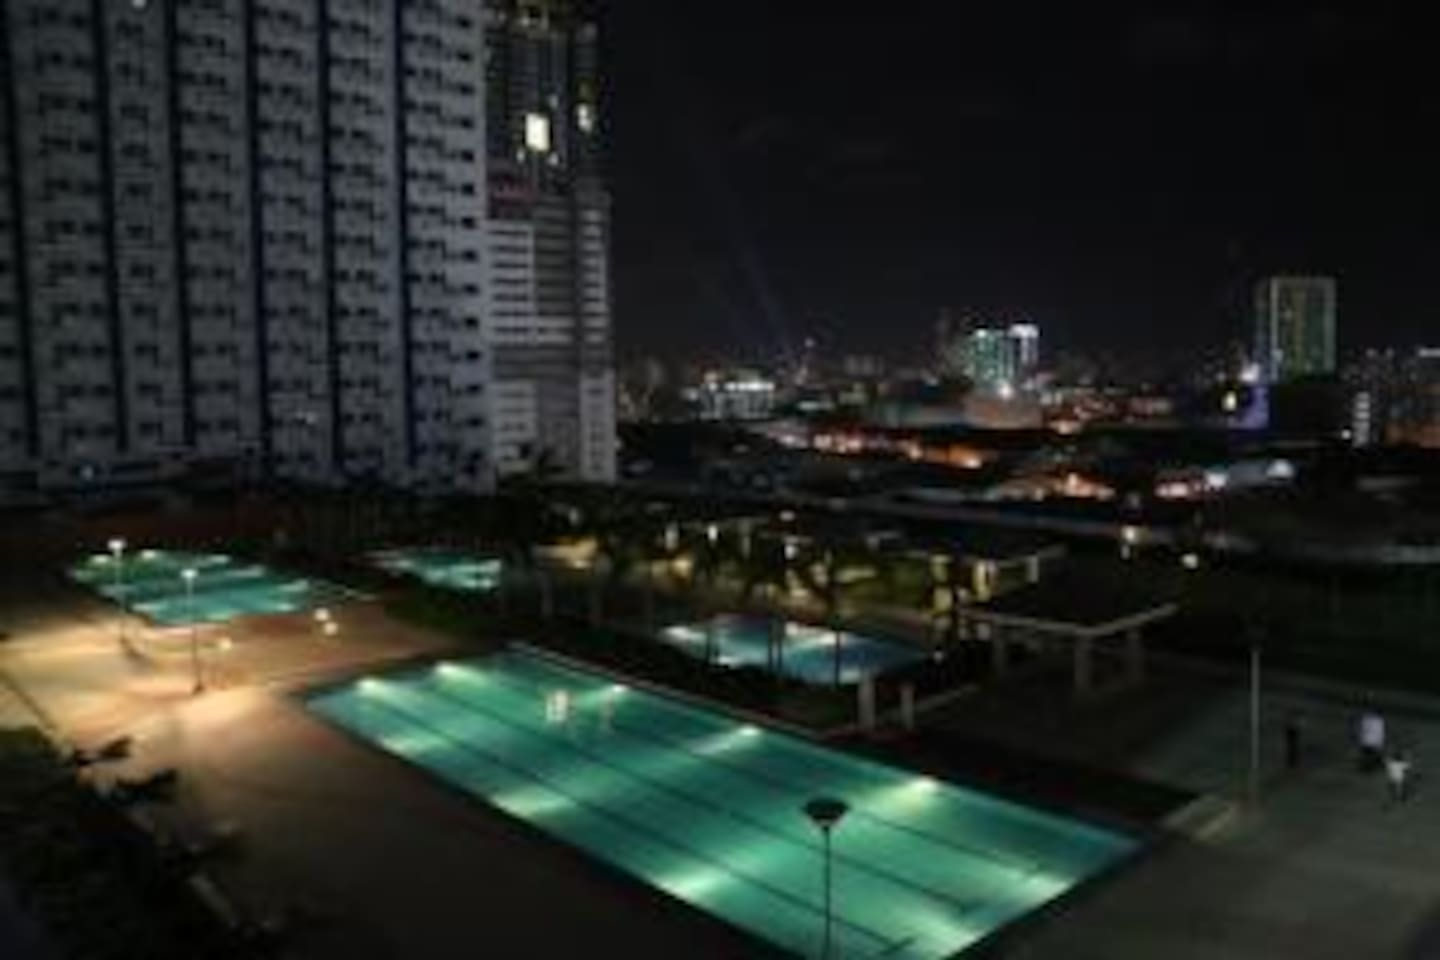 View of the pool and garden area at night. Good for staycationer.